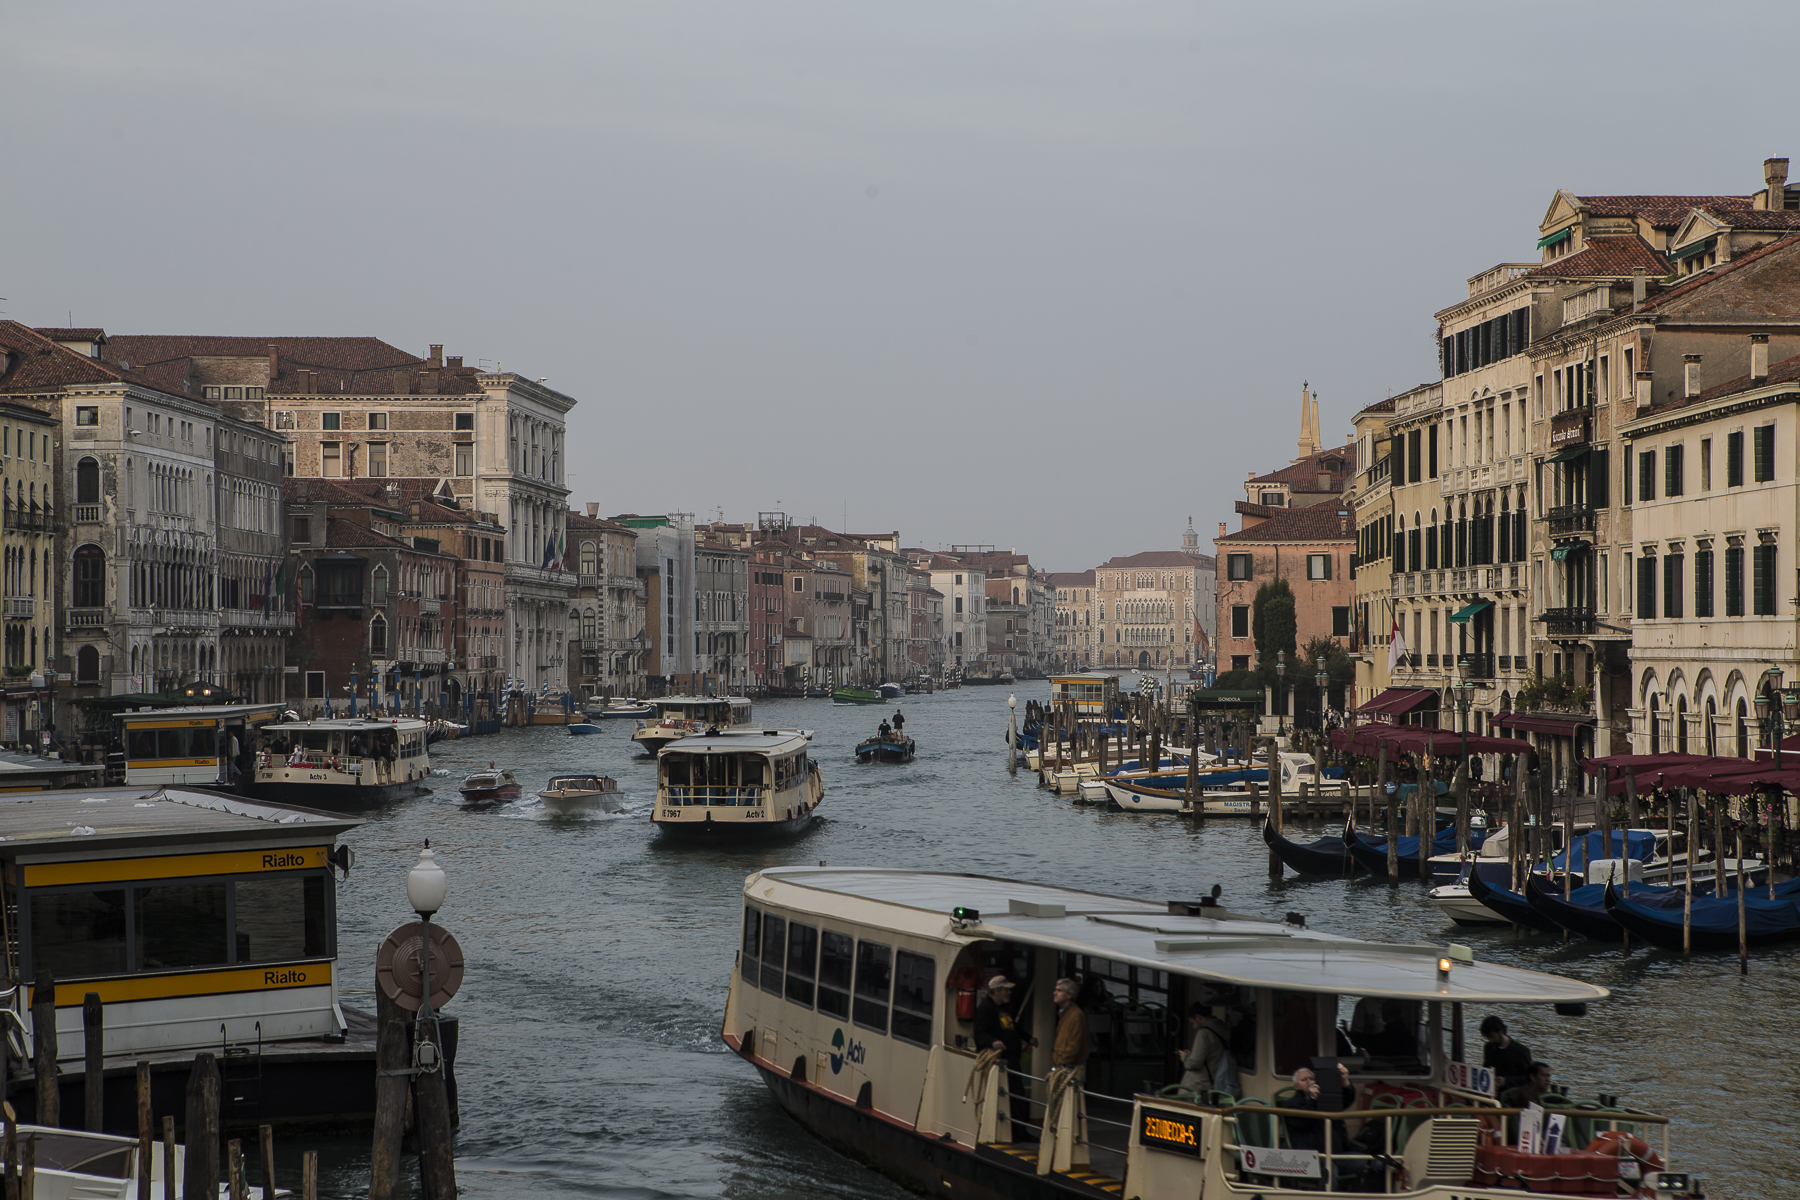 Grand Canal at morning rush hour